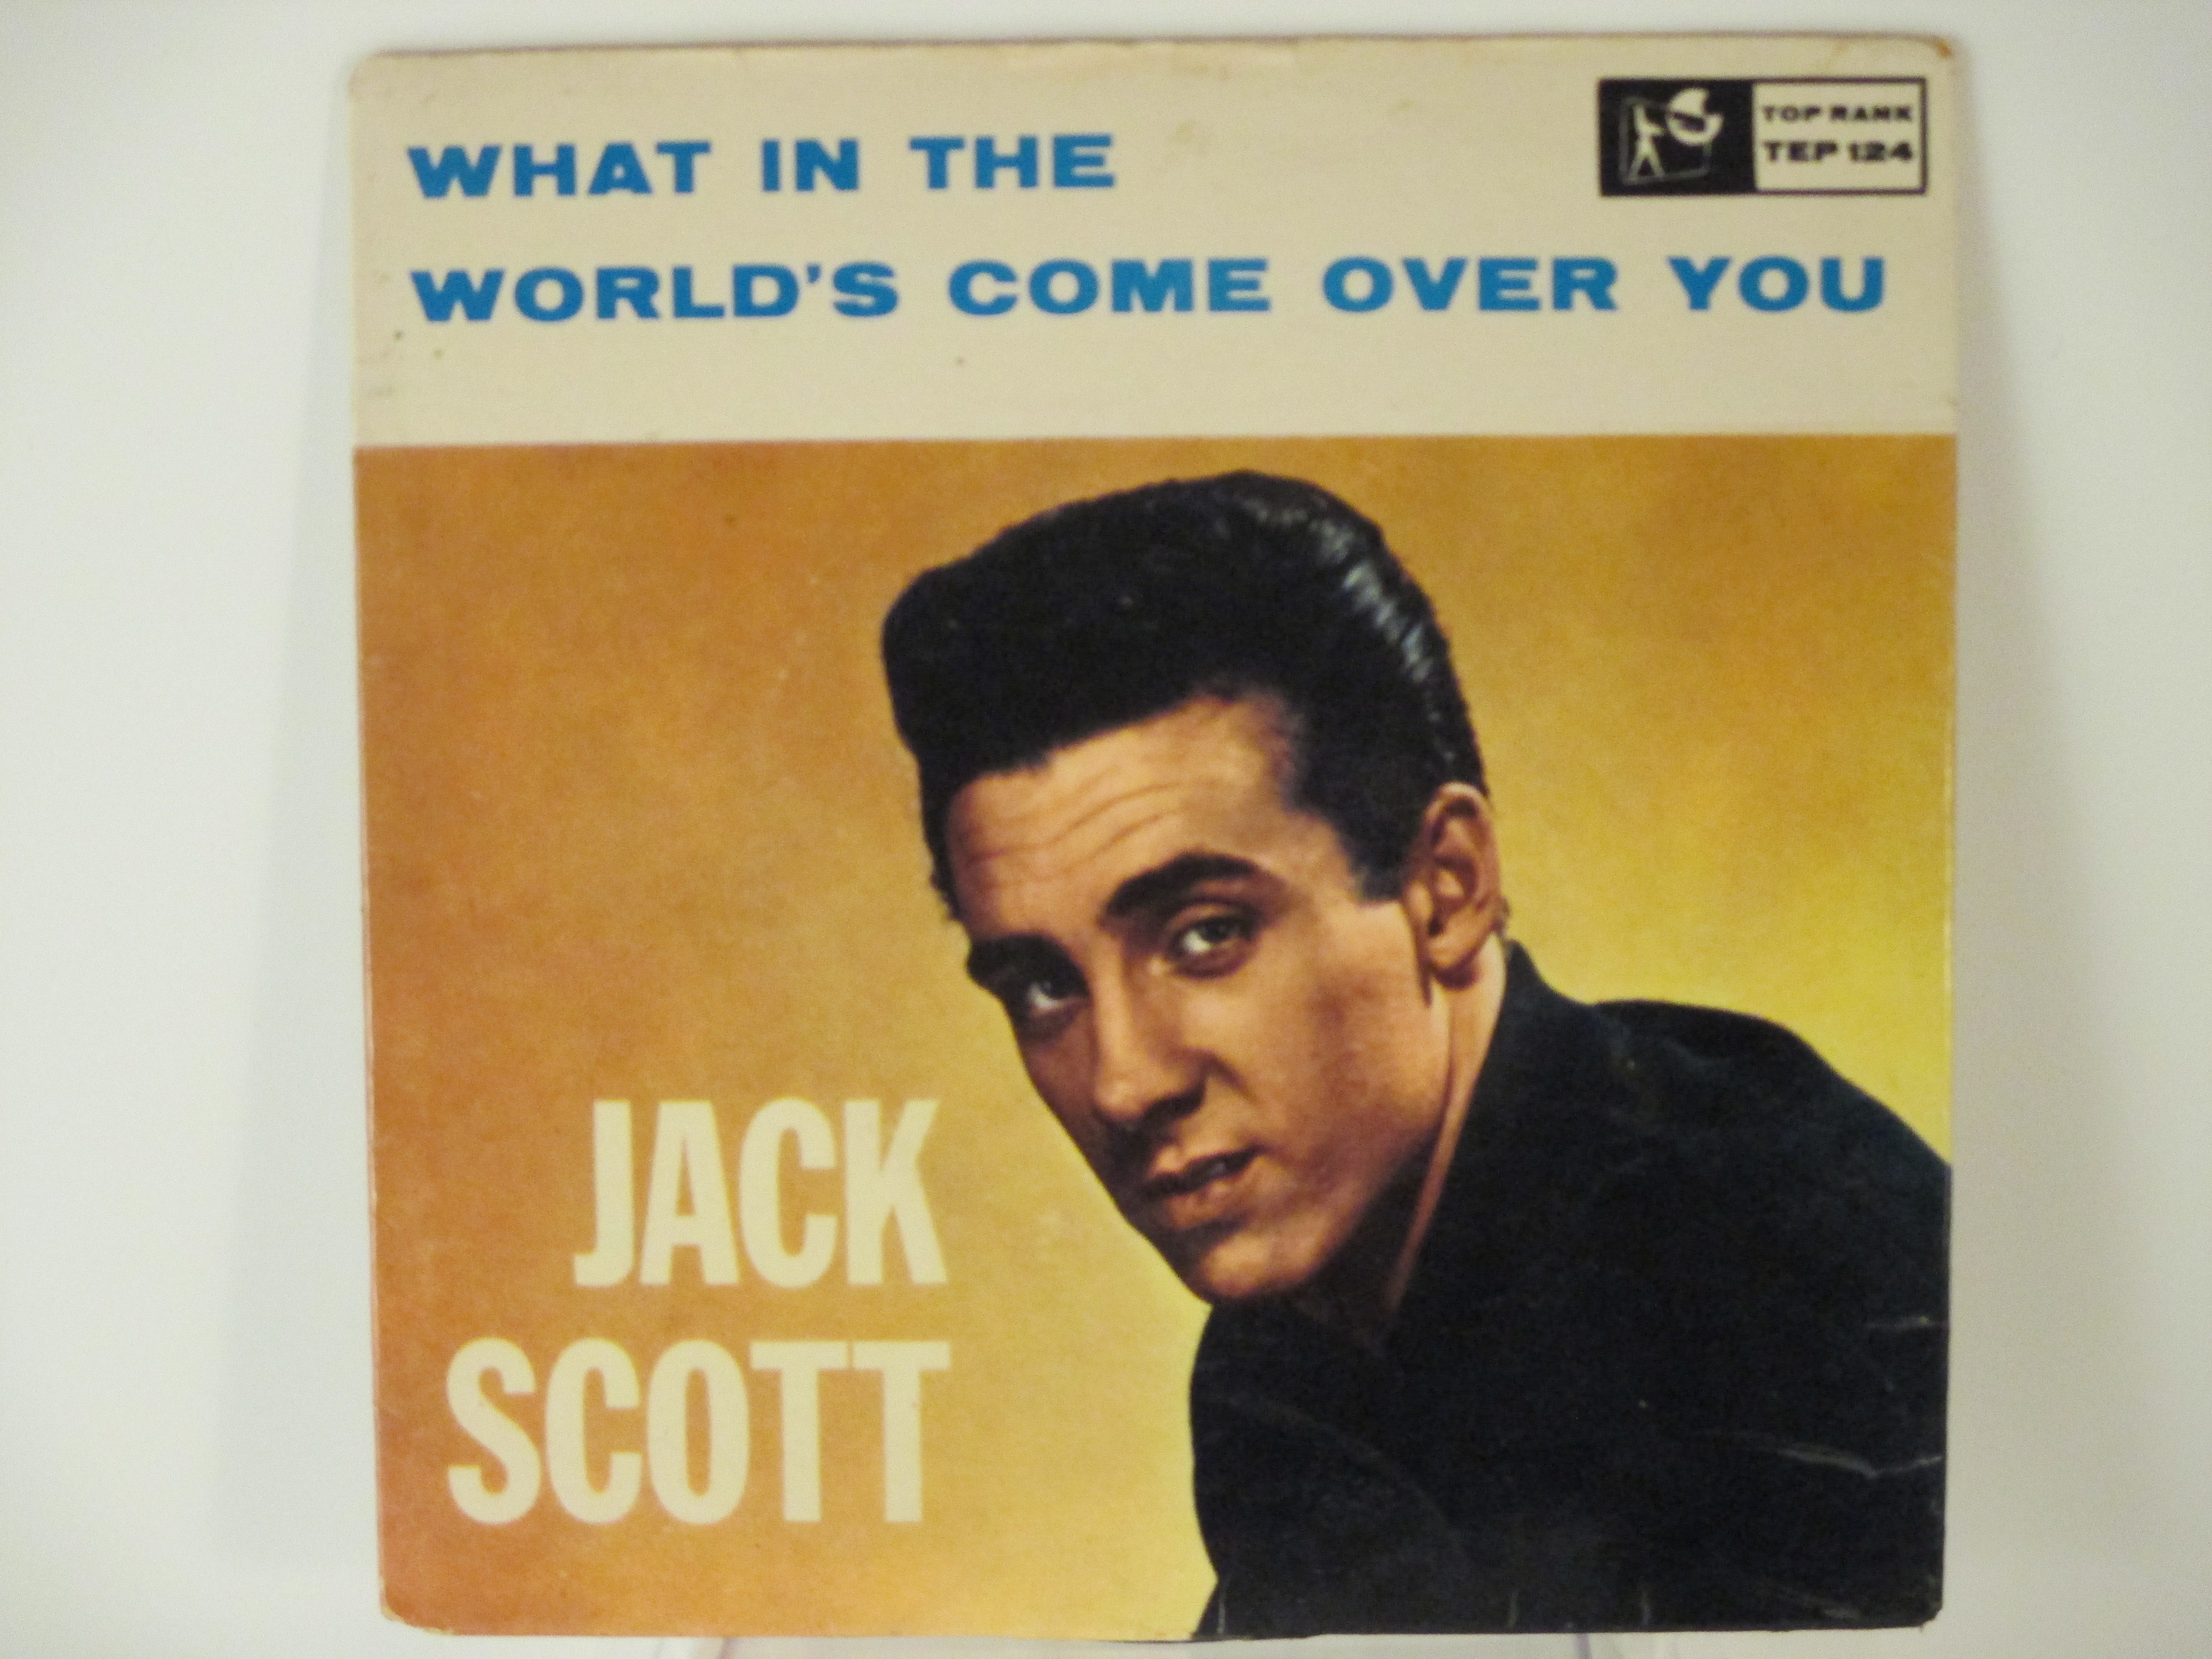 JACK SCOTT : (EP) What in the world's come over you / Baby baby / Oh little one / Burning bridges